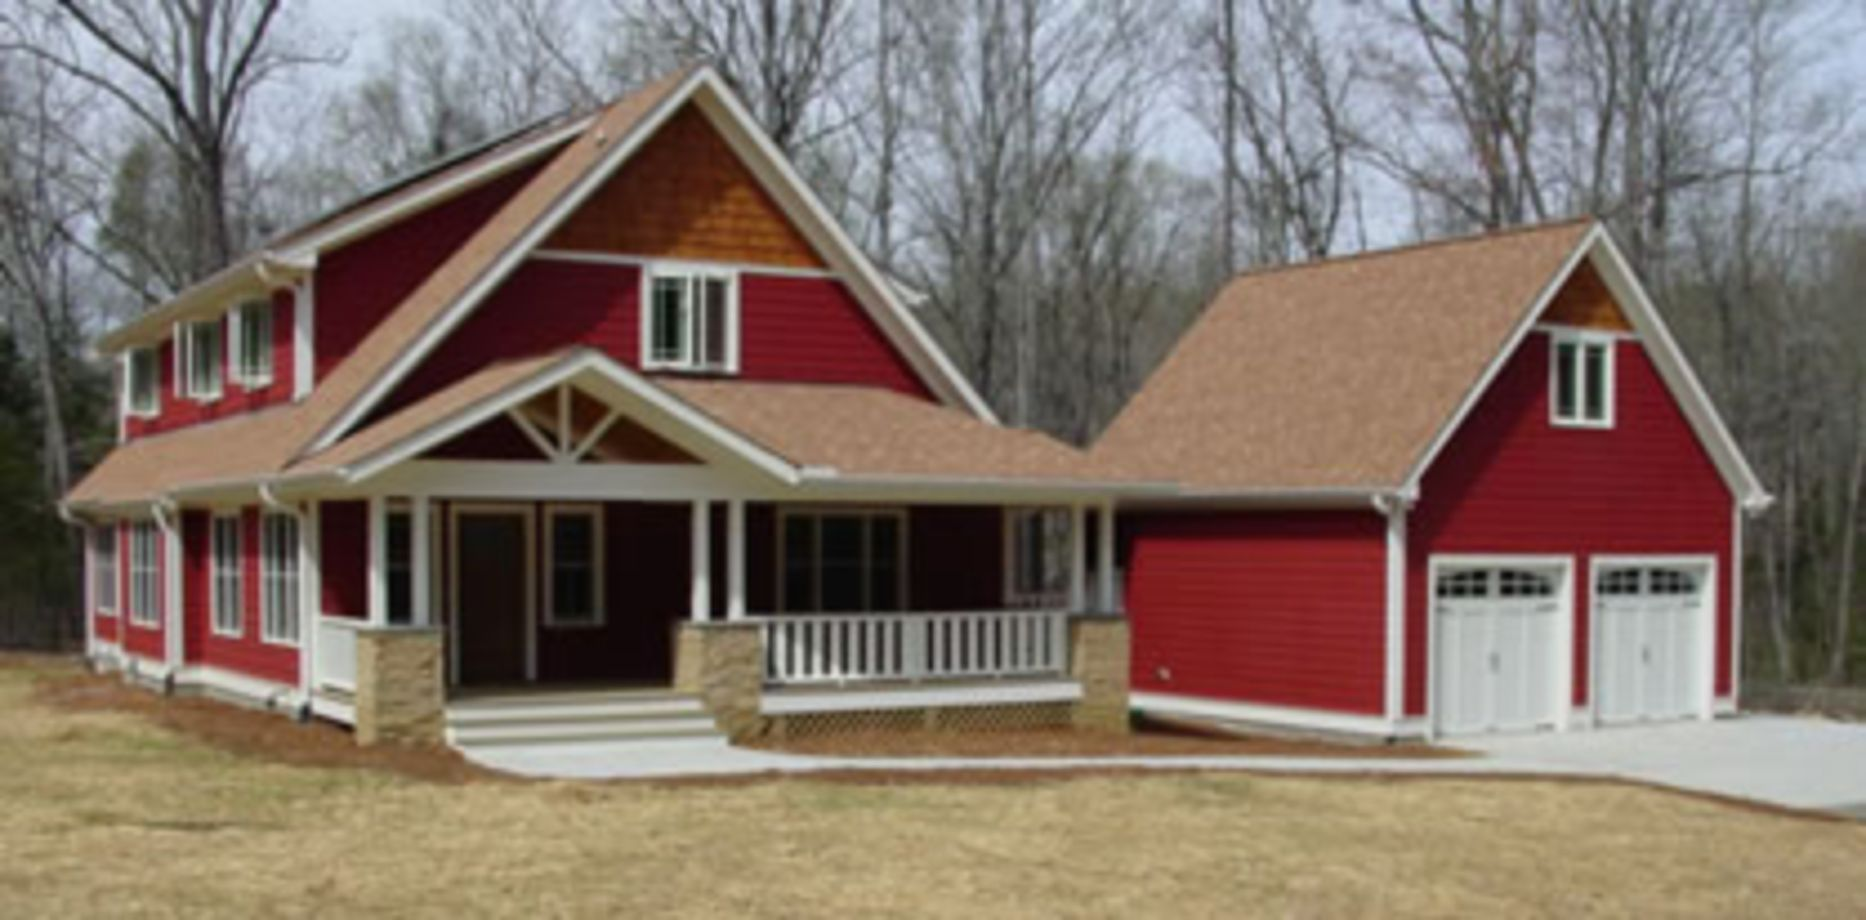 Exterior house colors with brown roof 03